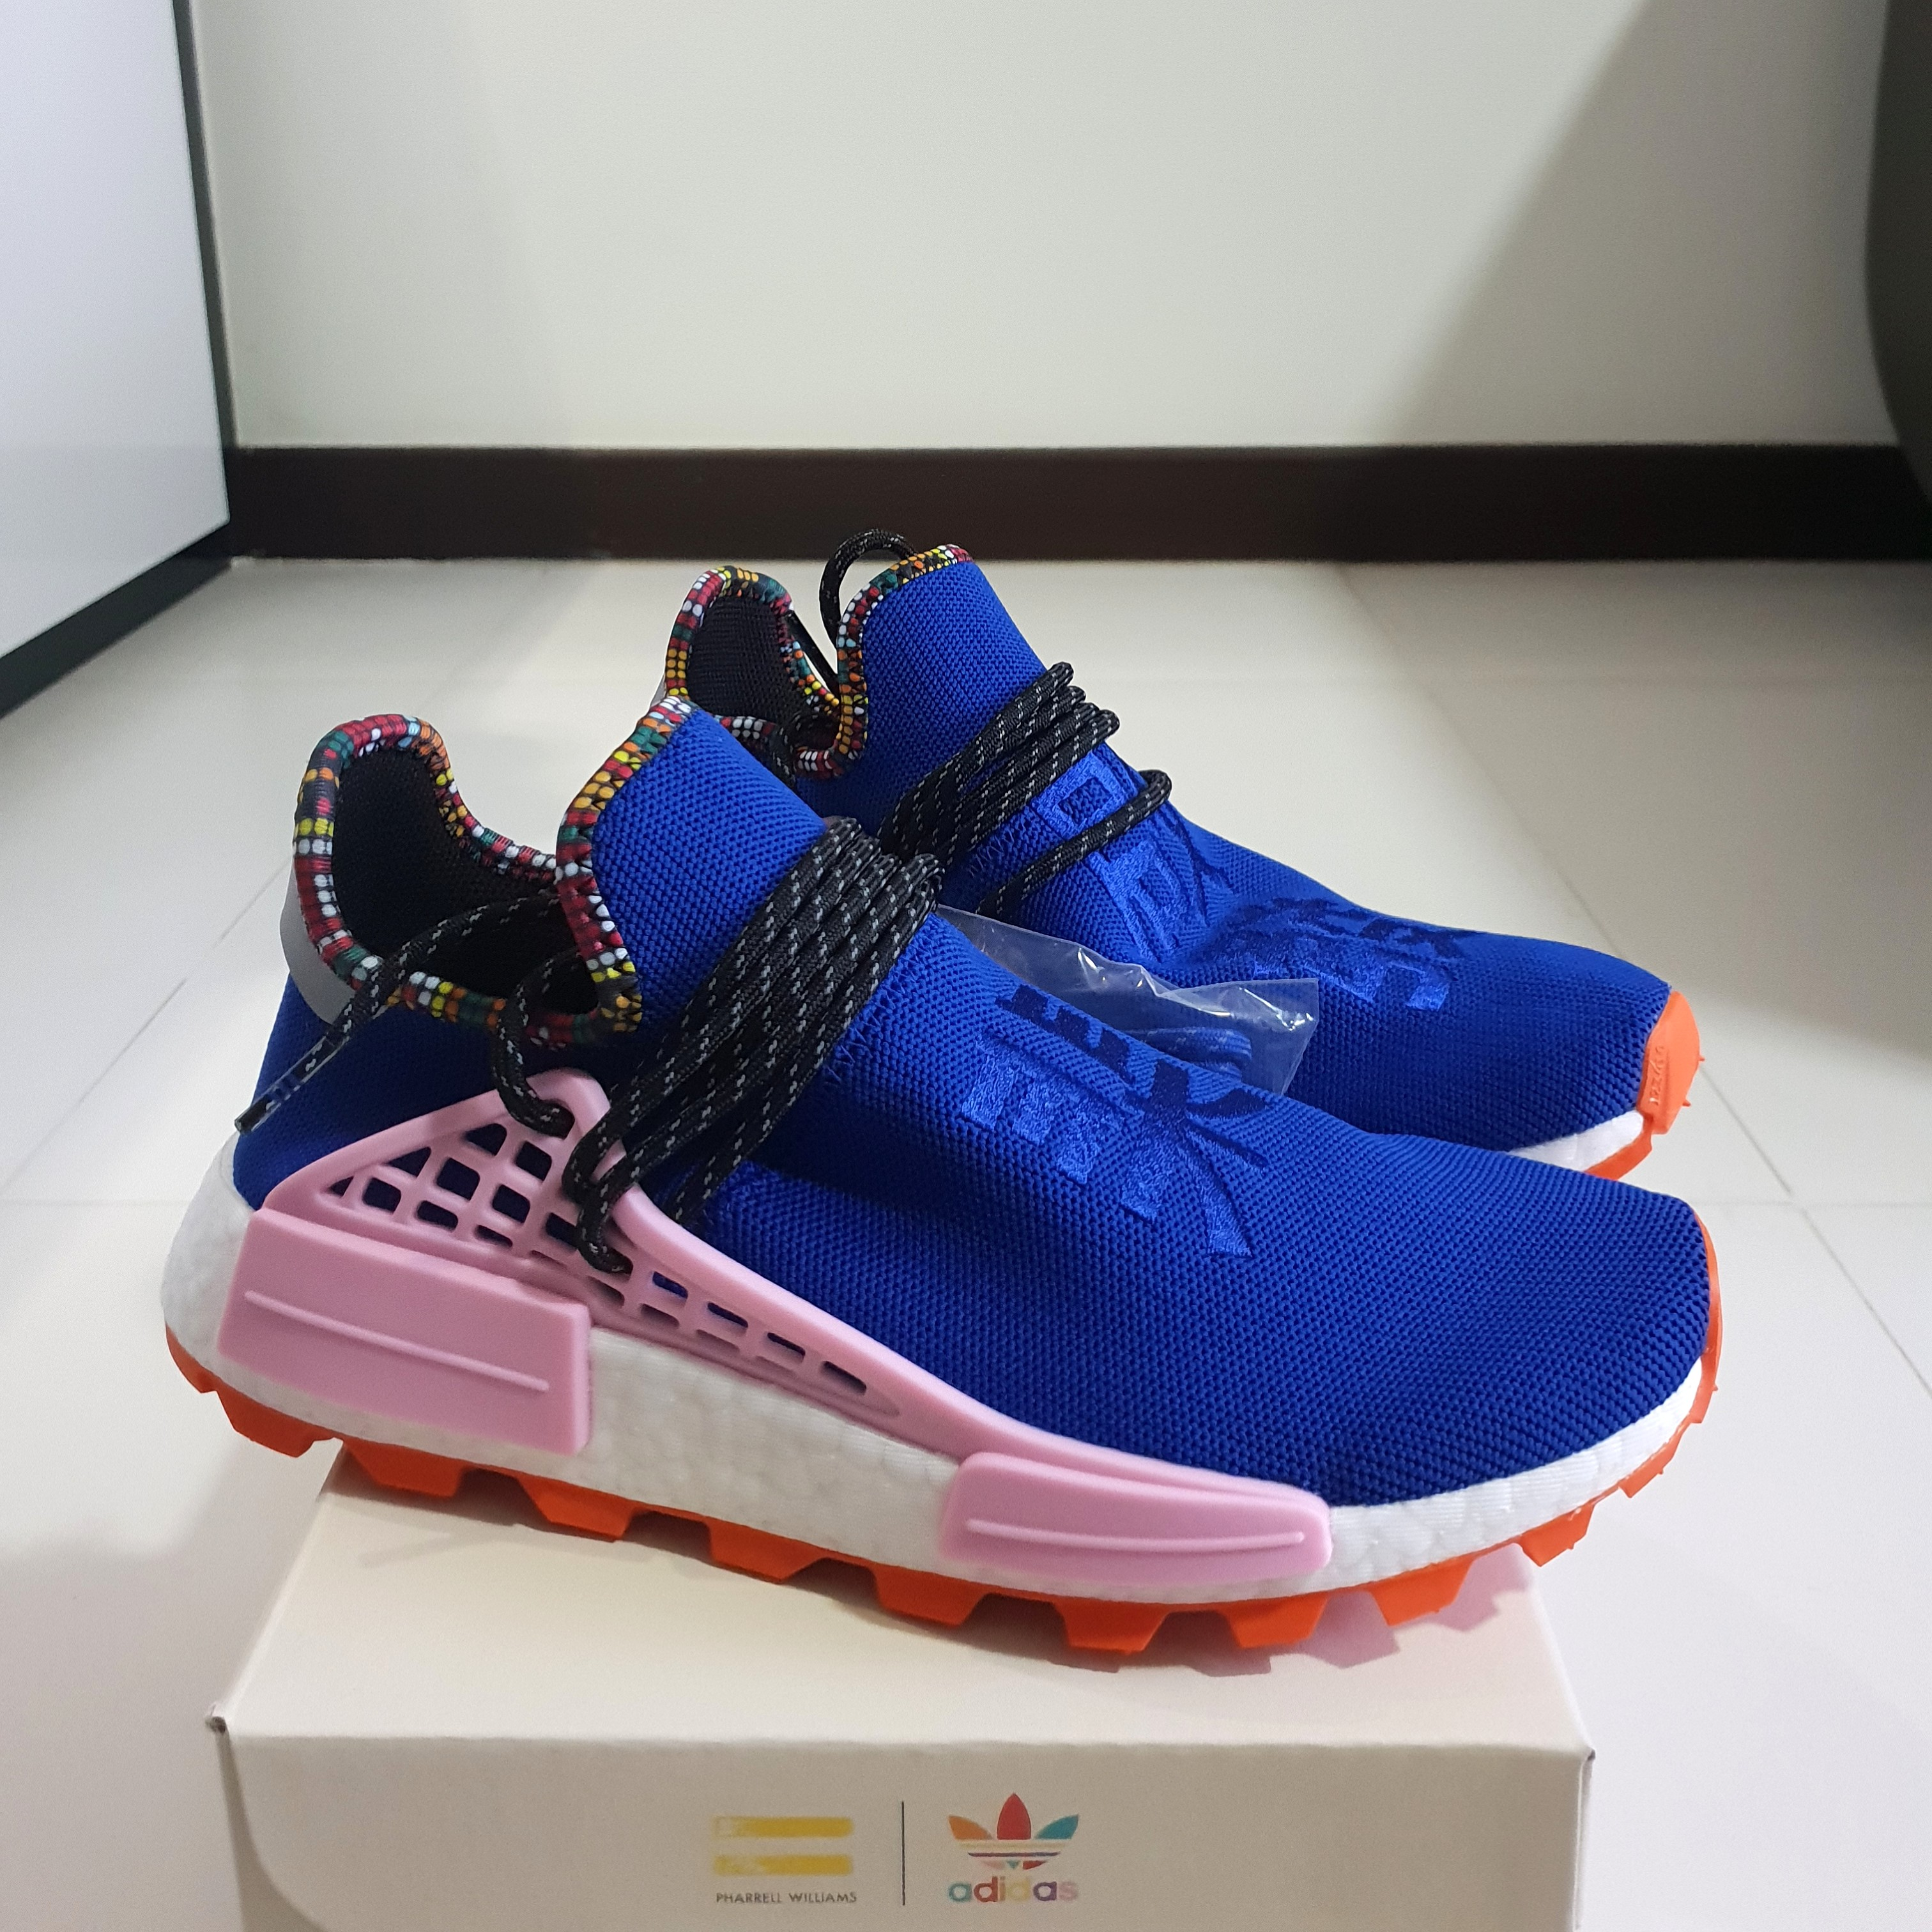 lowest price 34aaf a2127 Adidas NMD Pharrell Williams PW Human Race Powder Blue Orange Inspiration  Pack, Men s Fashion, Footwear, Sneakers on Carousell